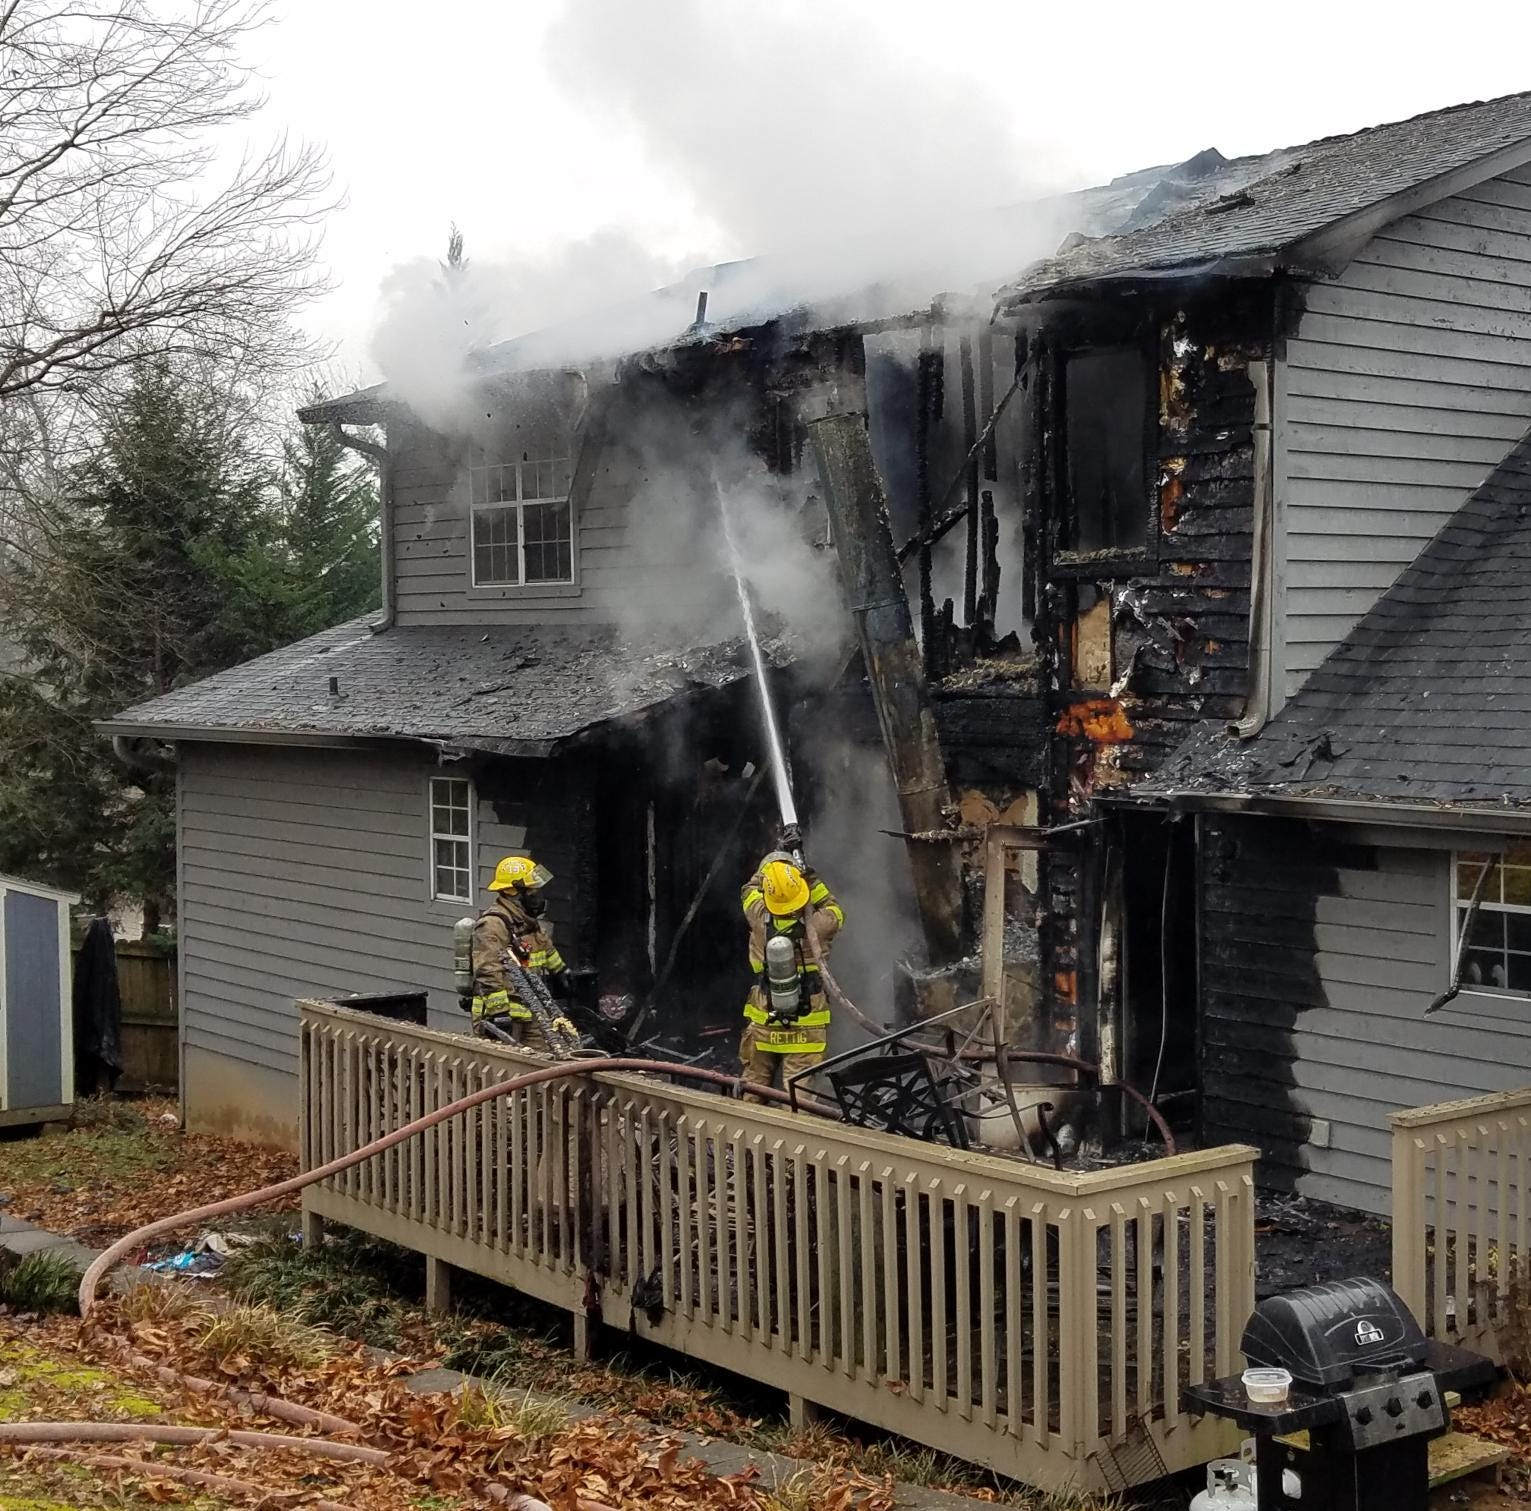 Occupants and pets spared in house fire in West Knox Co.